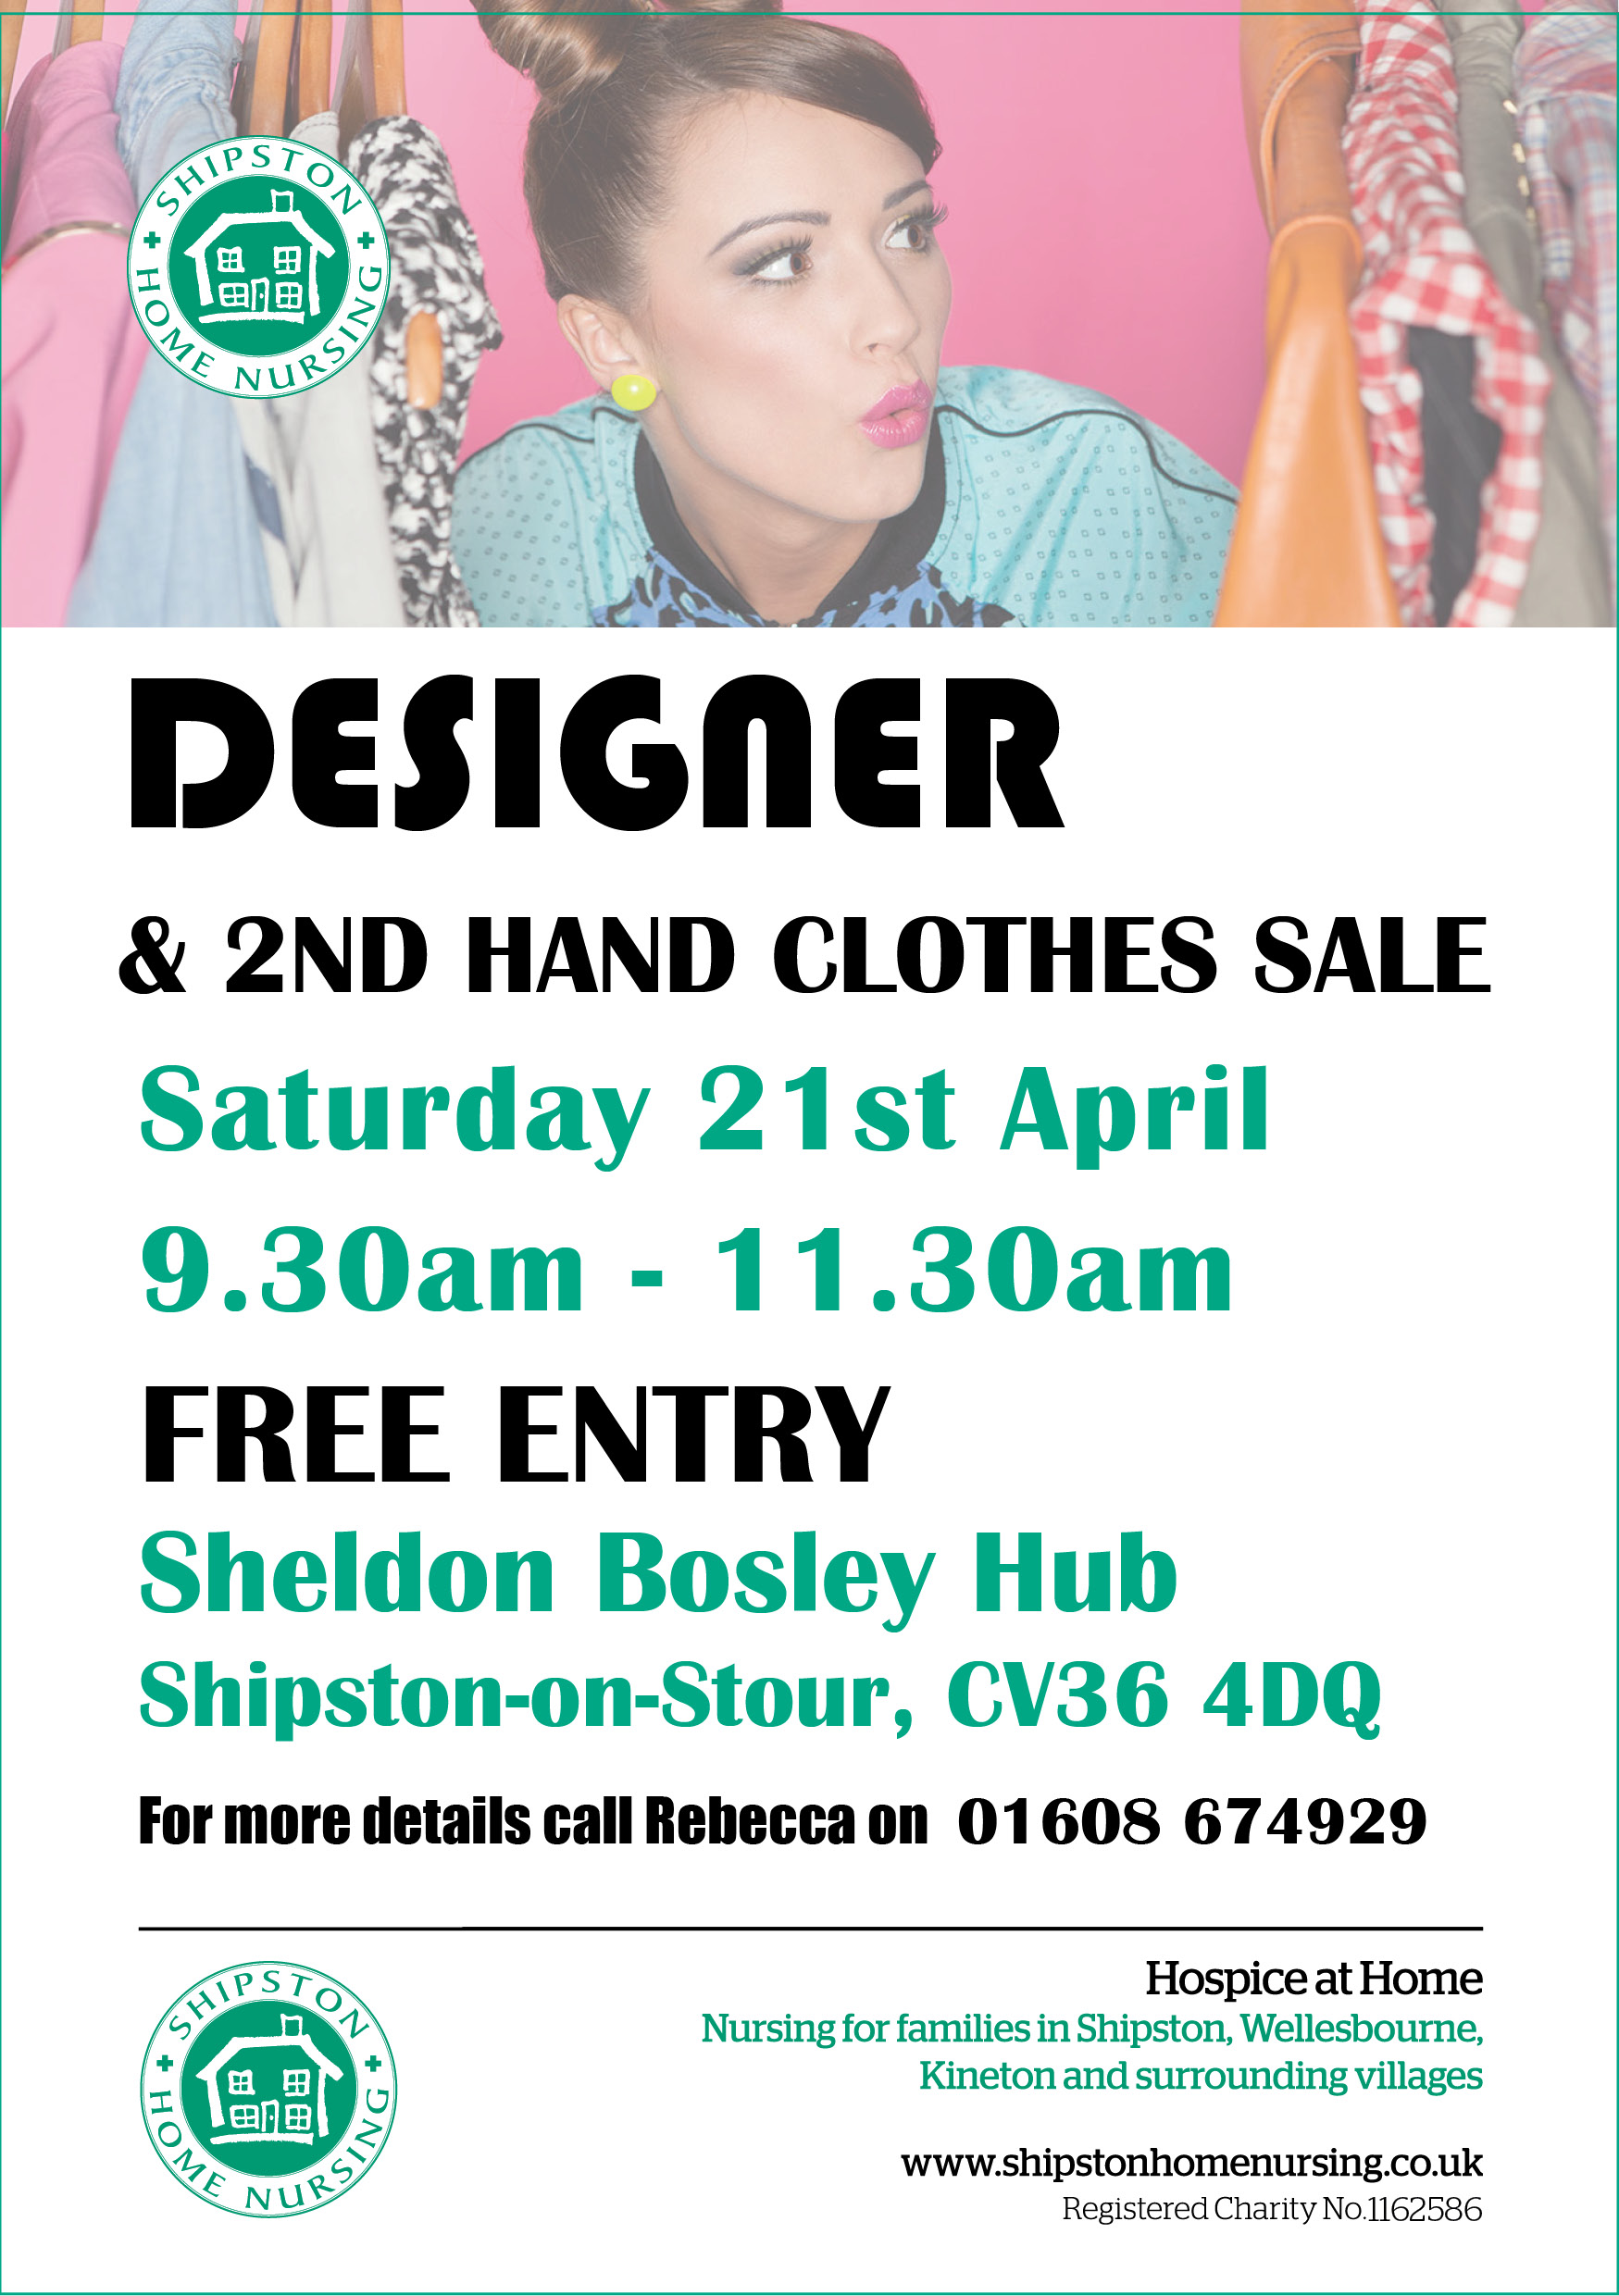 Designer & Second Hand Clothes Sale